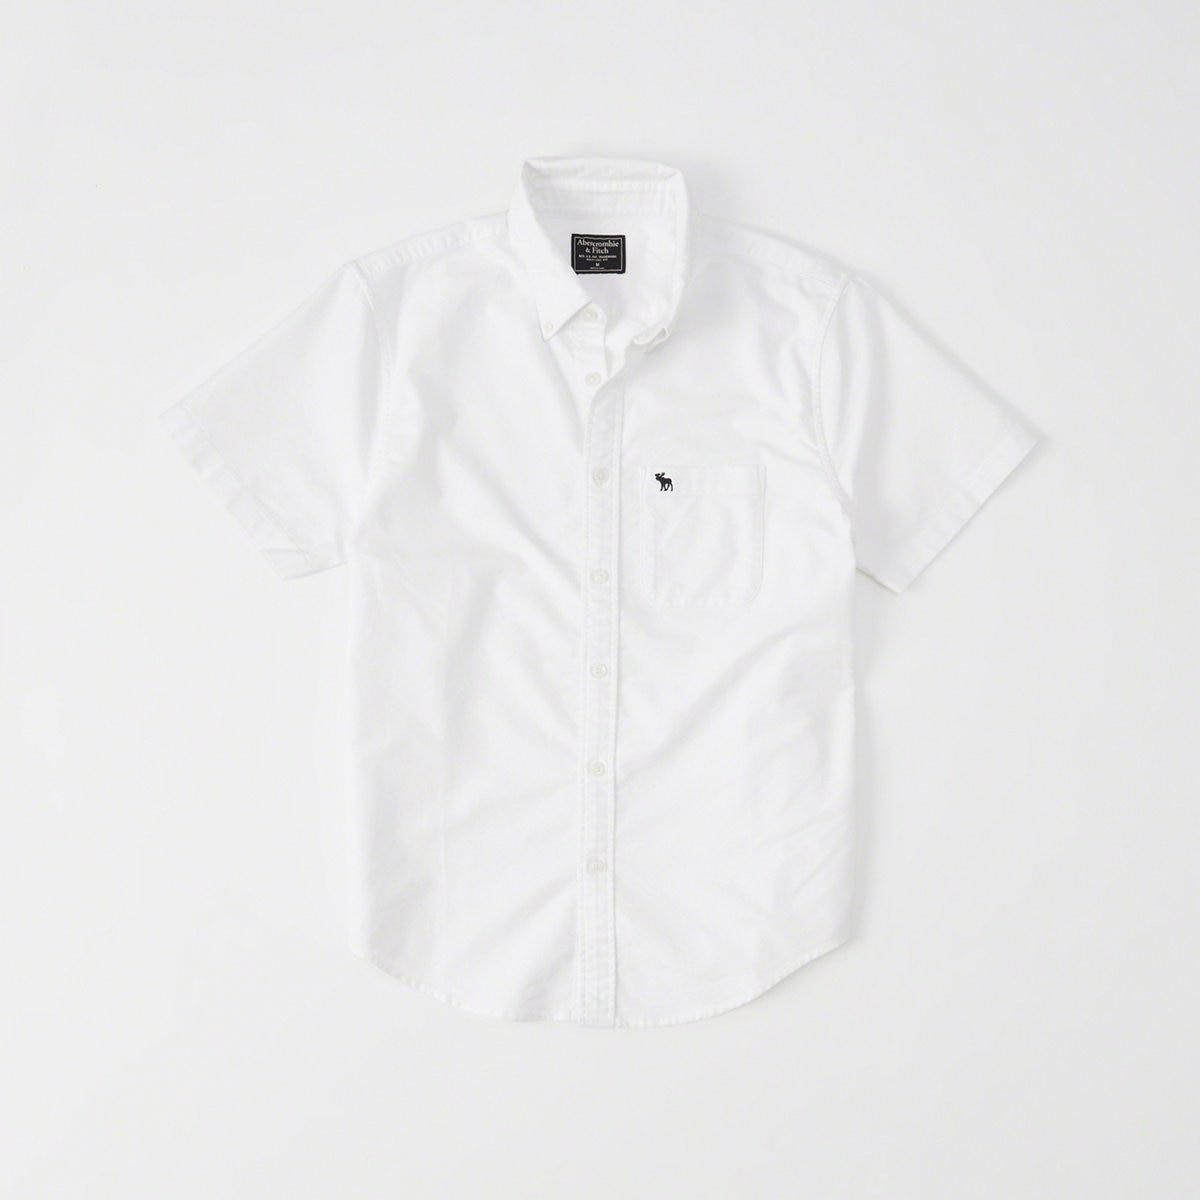 c9ceee65cc3 Lyst - Abercrombie   Fitch Icon Short-sleeve Oxford Shirt in White ...